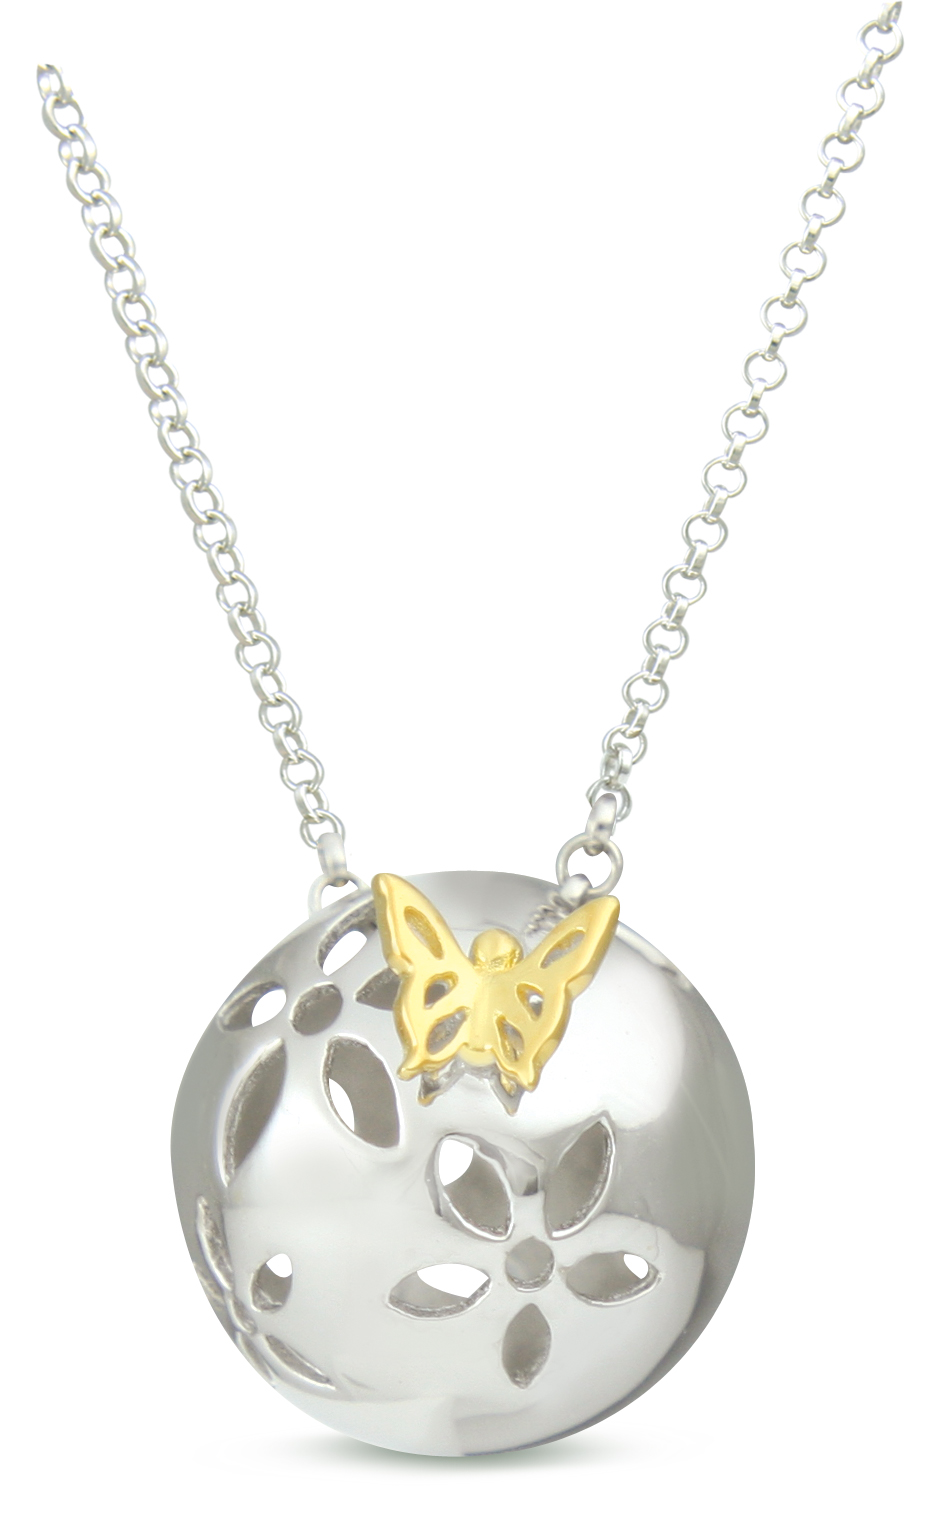 65702 - Sphere of Life in Sterling Silver